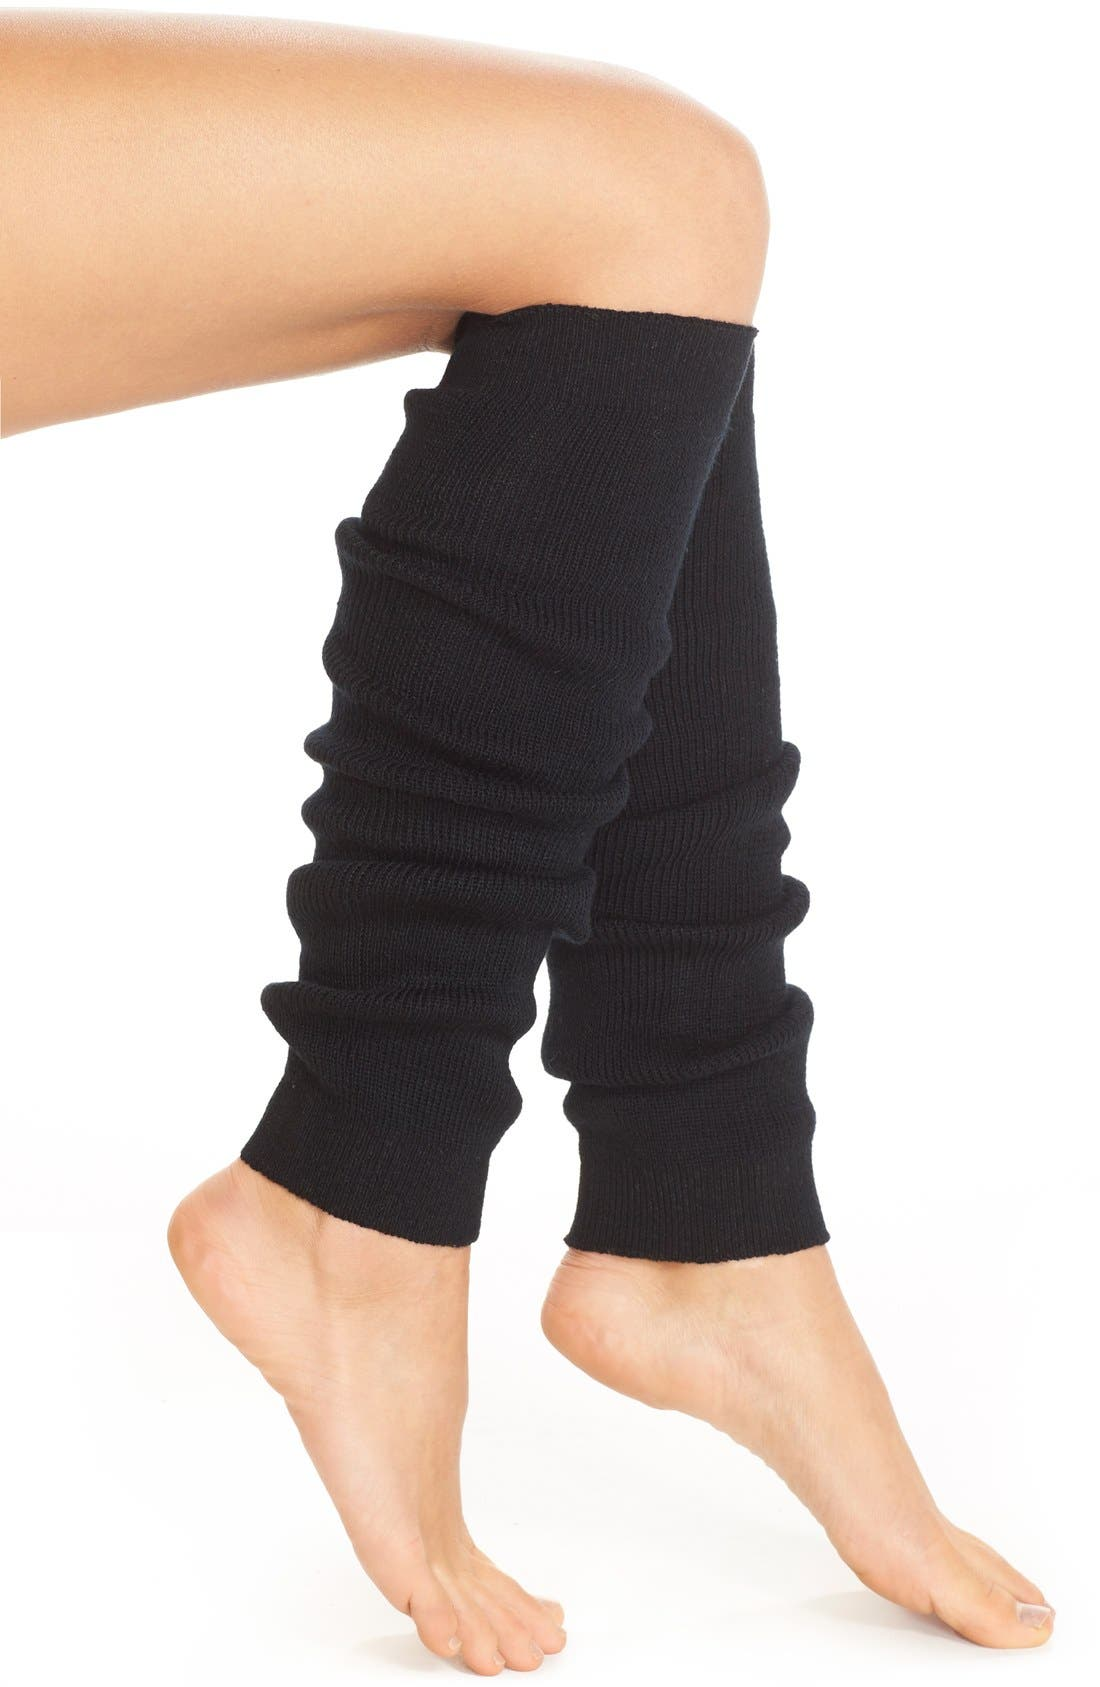 Alternate Image 1 Selected - Zella Knit Leg Warmers